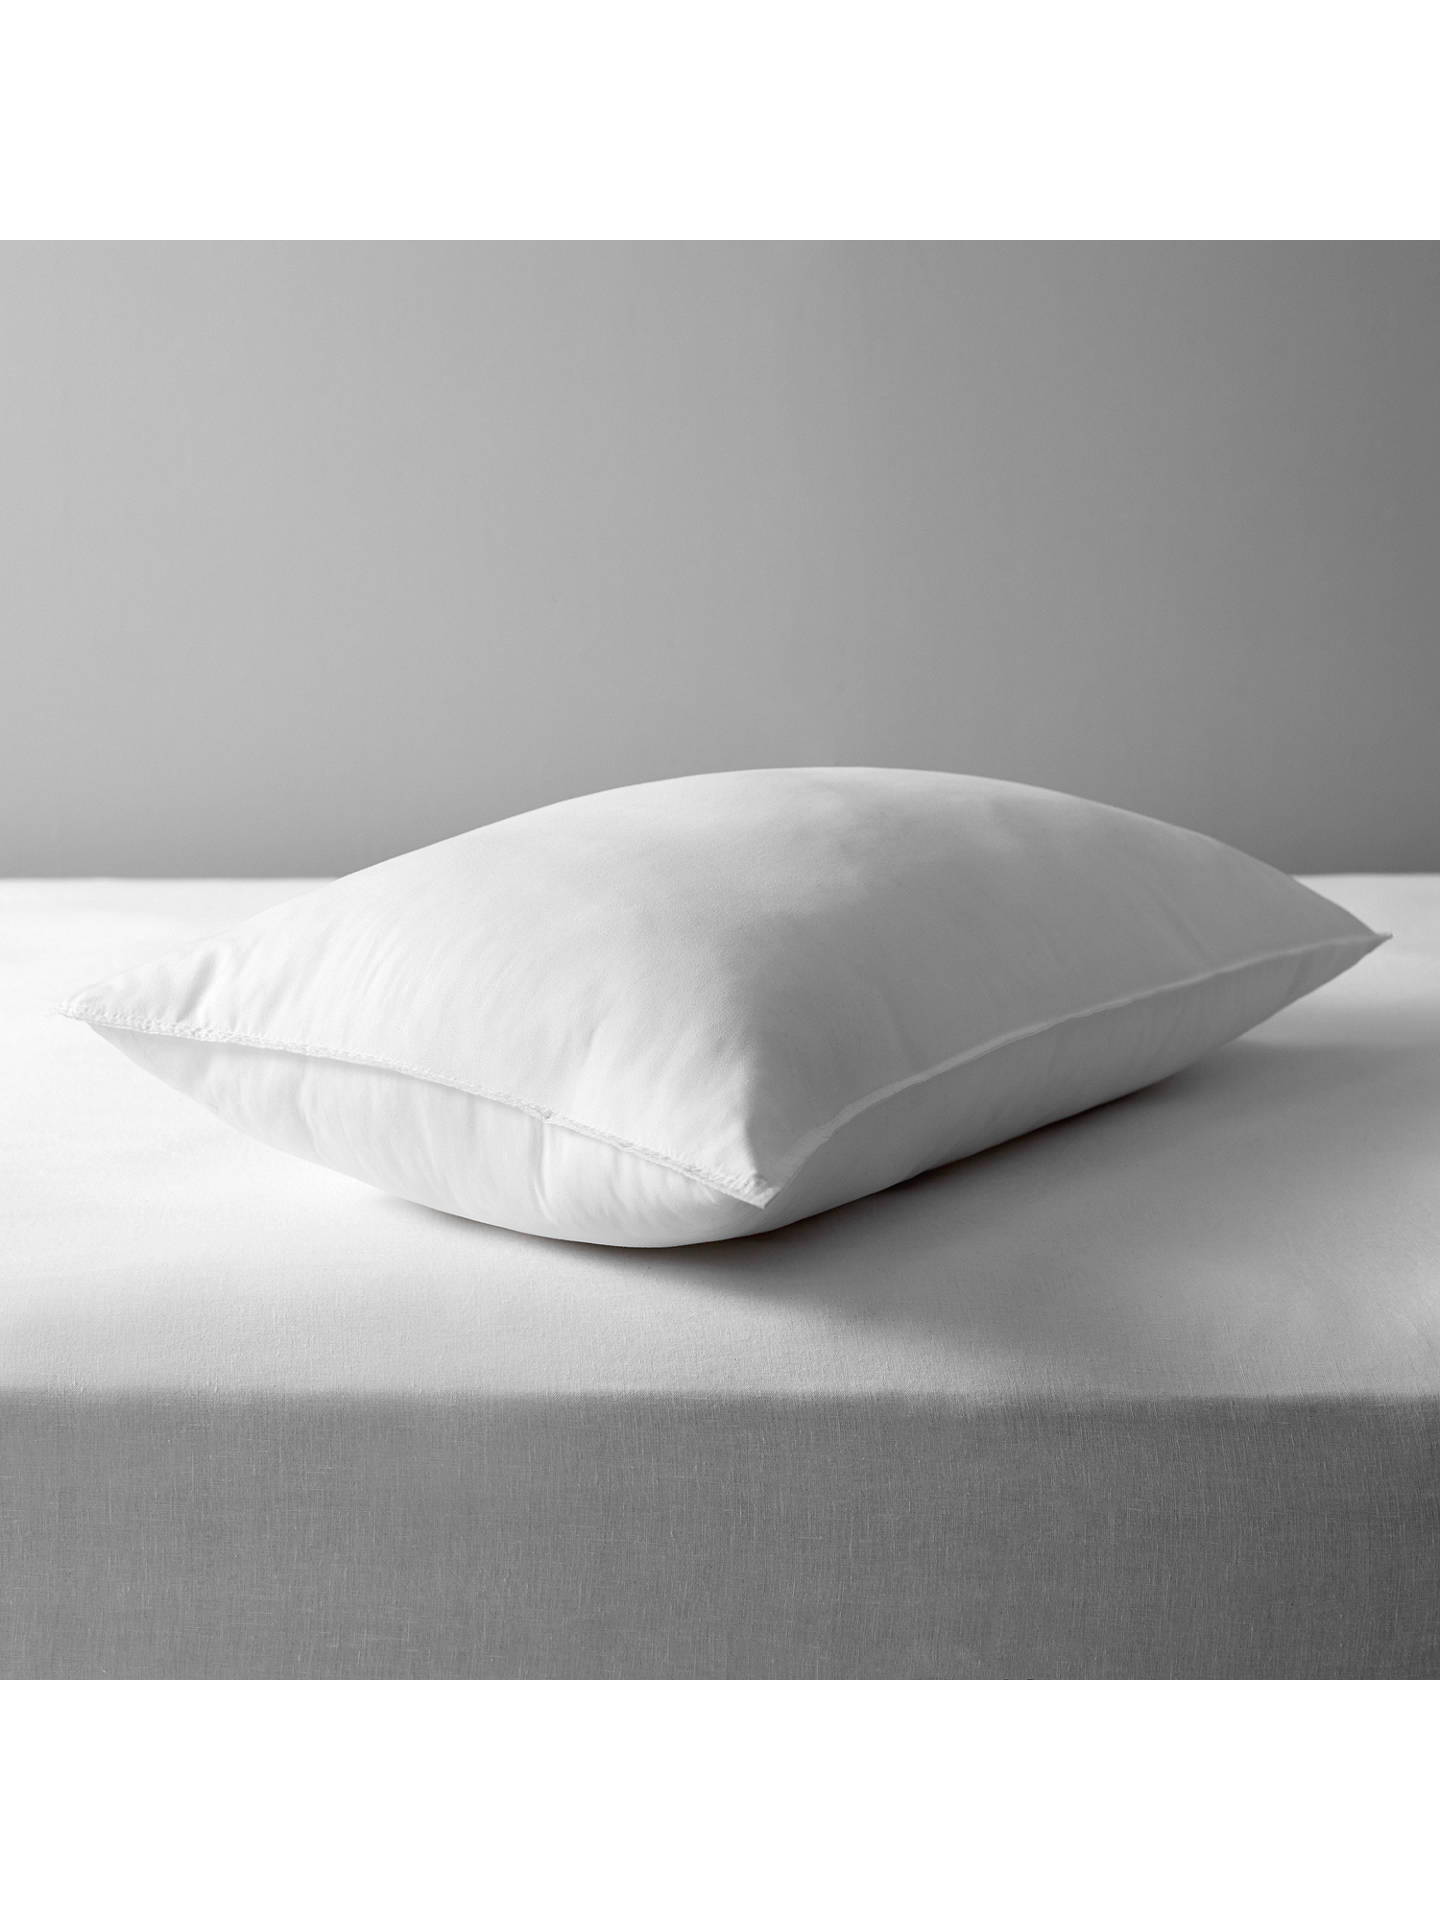 BuyJohn Lewis & Partners Synthetic Soft Touch Washable Standard Pillow, Medium/Firm Online at johnlewis.com